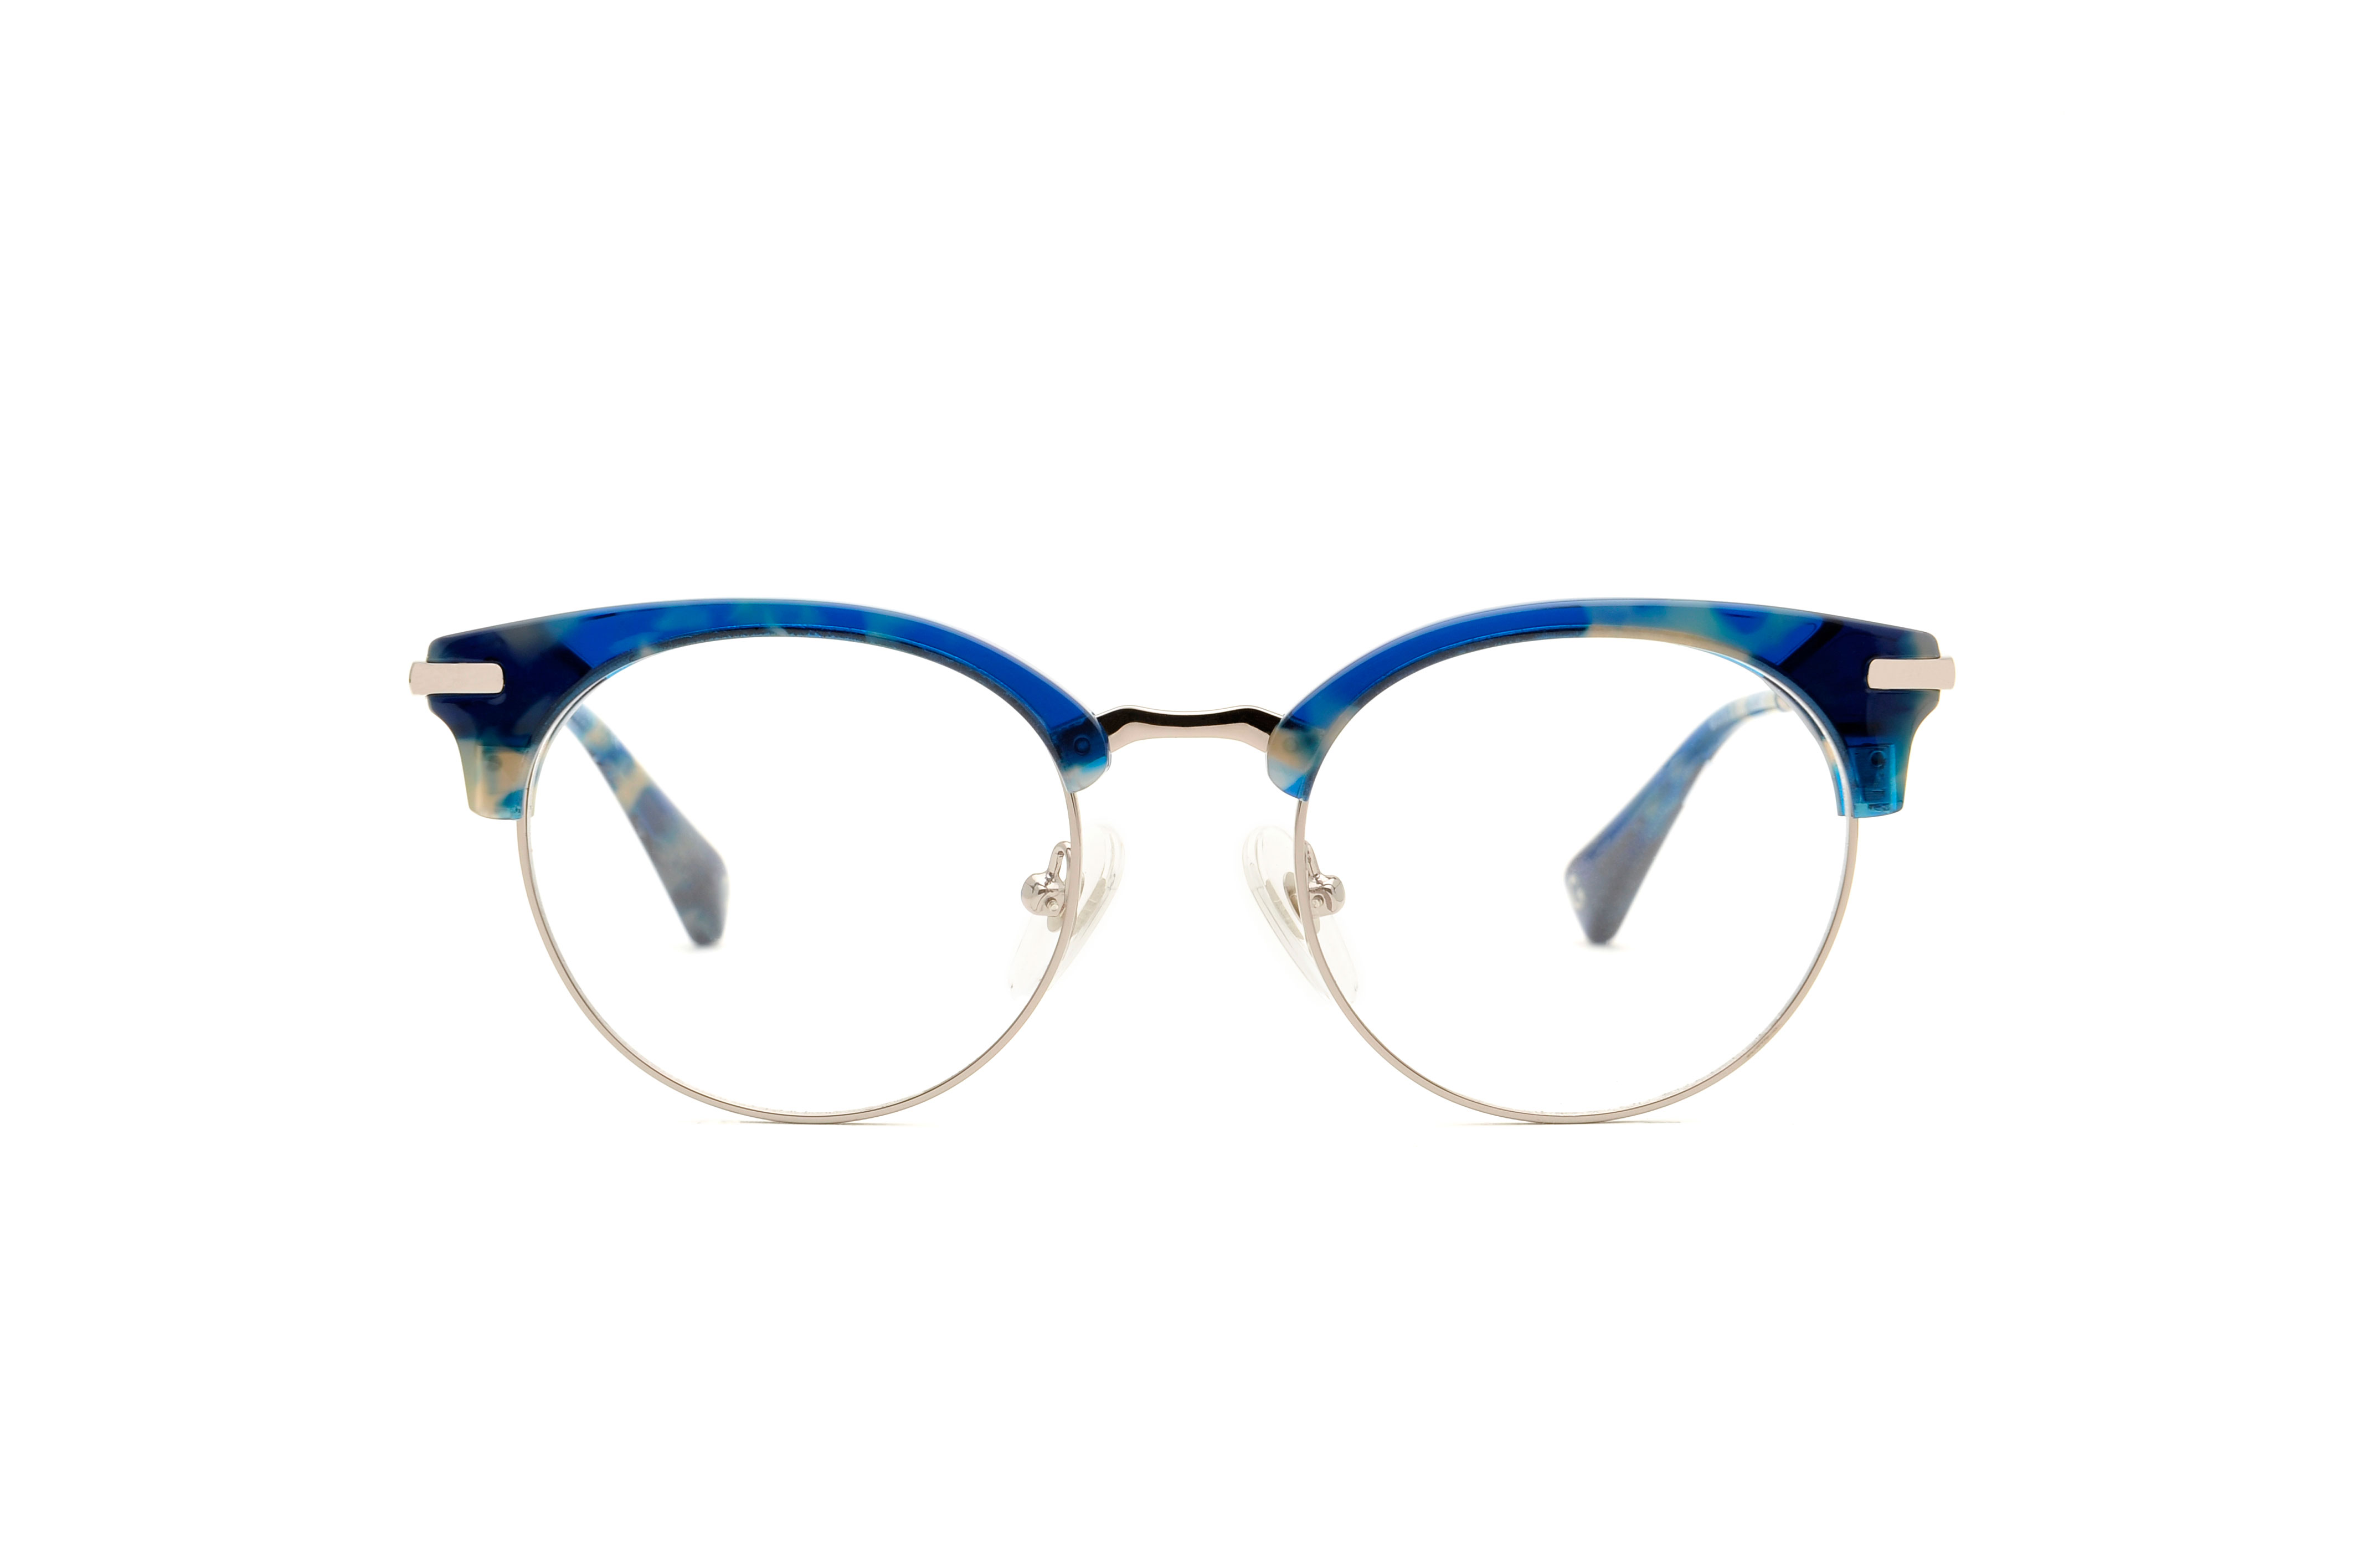 Tyler acetate/metal rounded blue sunglasses by GIGI Studios